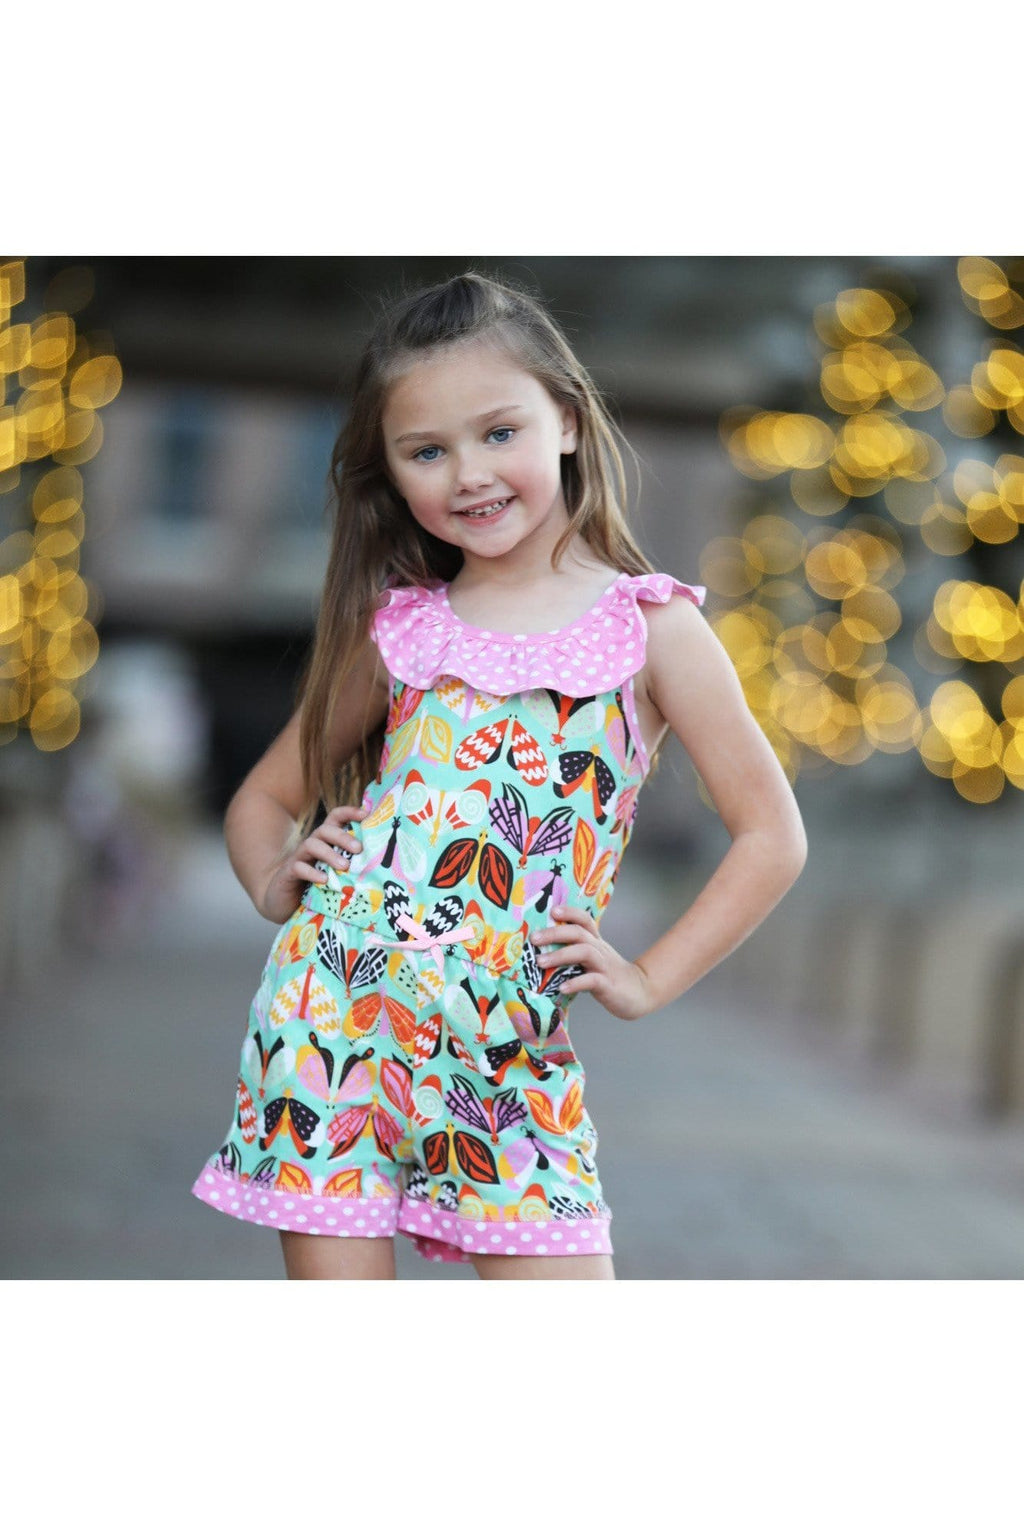 AnnLoren Little Big Girls Jumpsuit Butterfly Polkadot Spring One Pc Boutique Clothing Sizes 2/3T - 9/10 - Himelhoch's